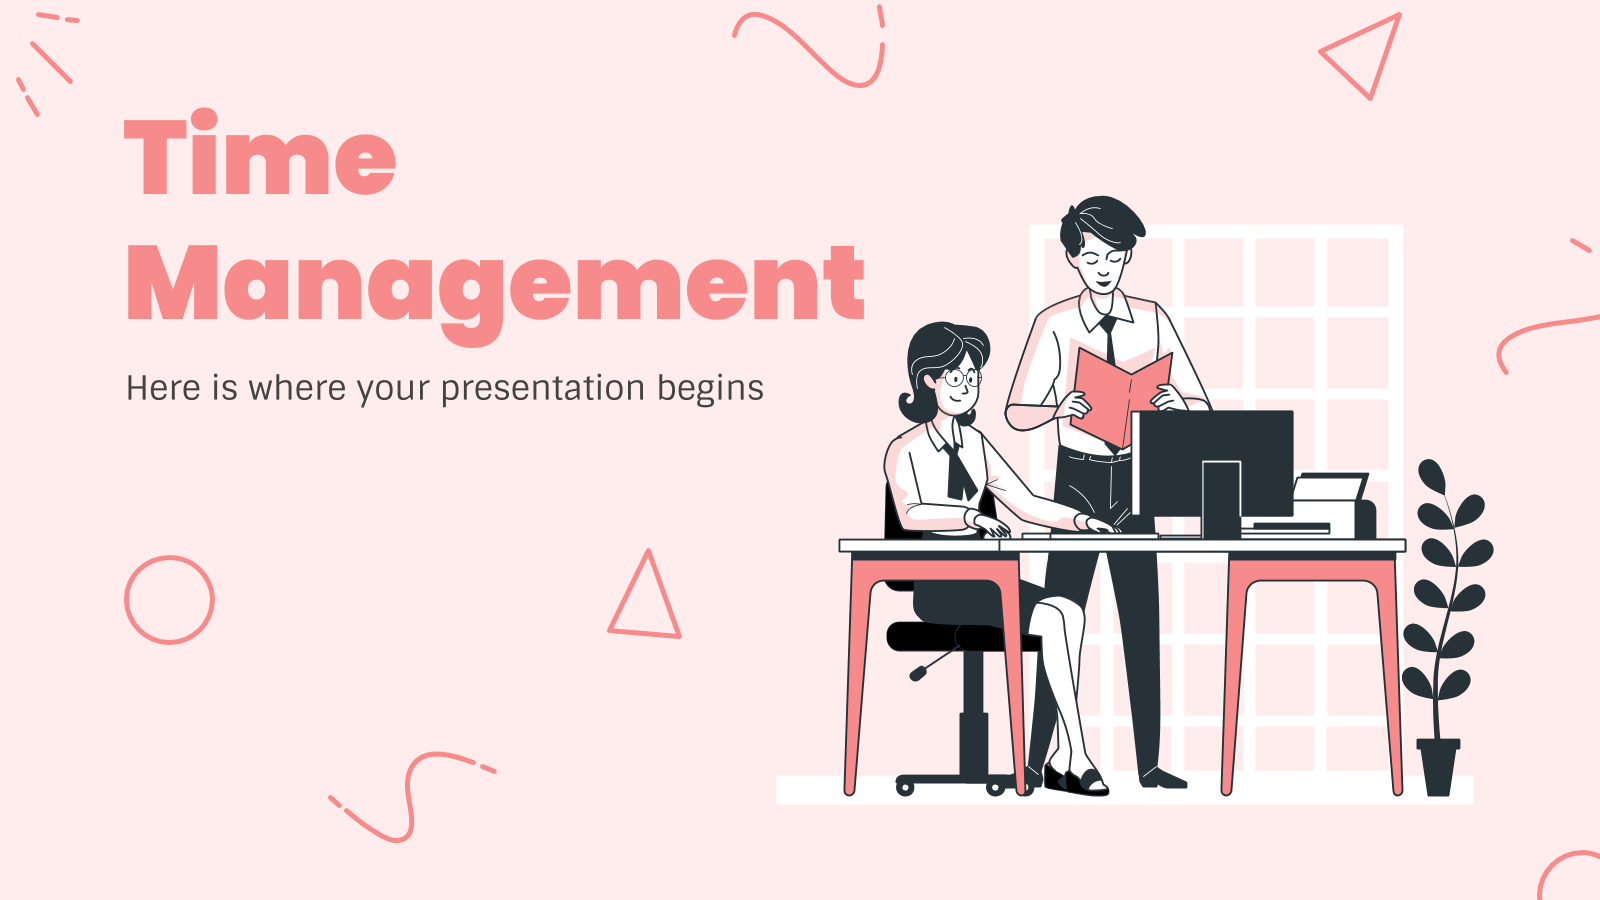 Time Management presentation template